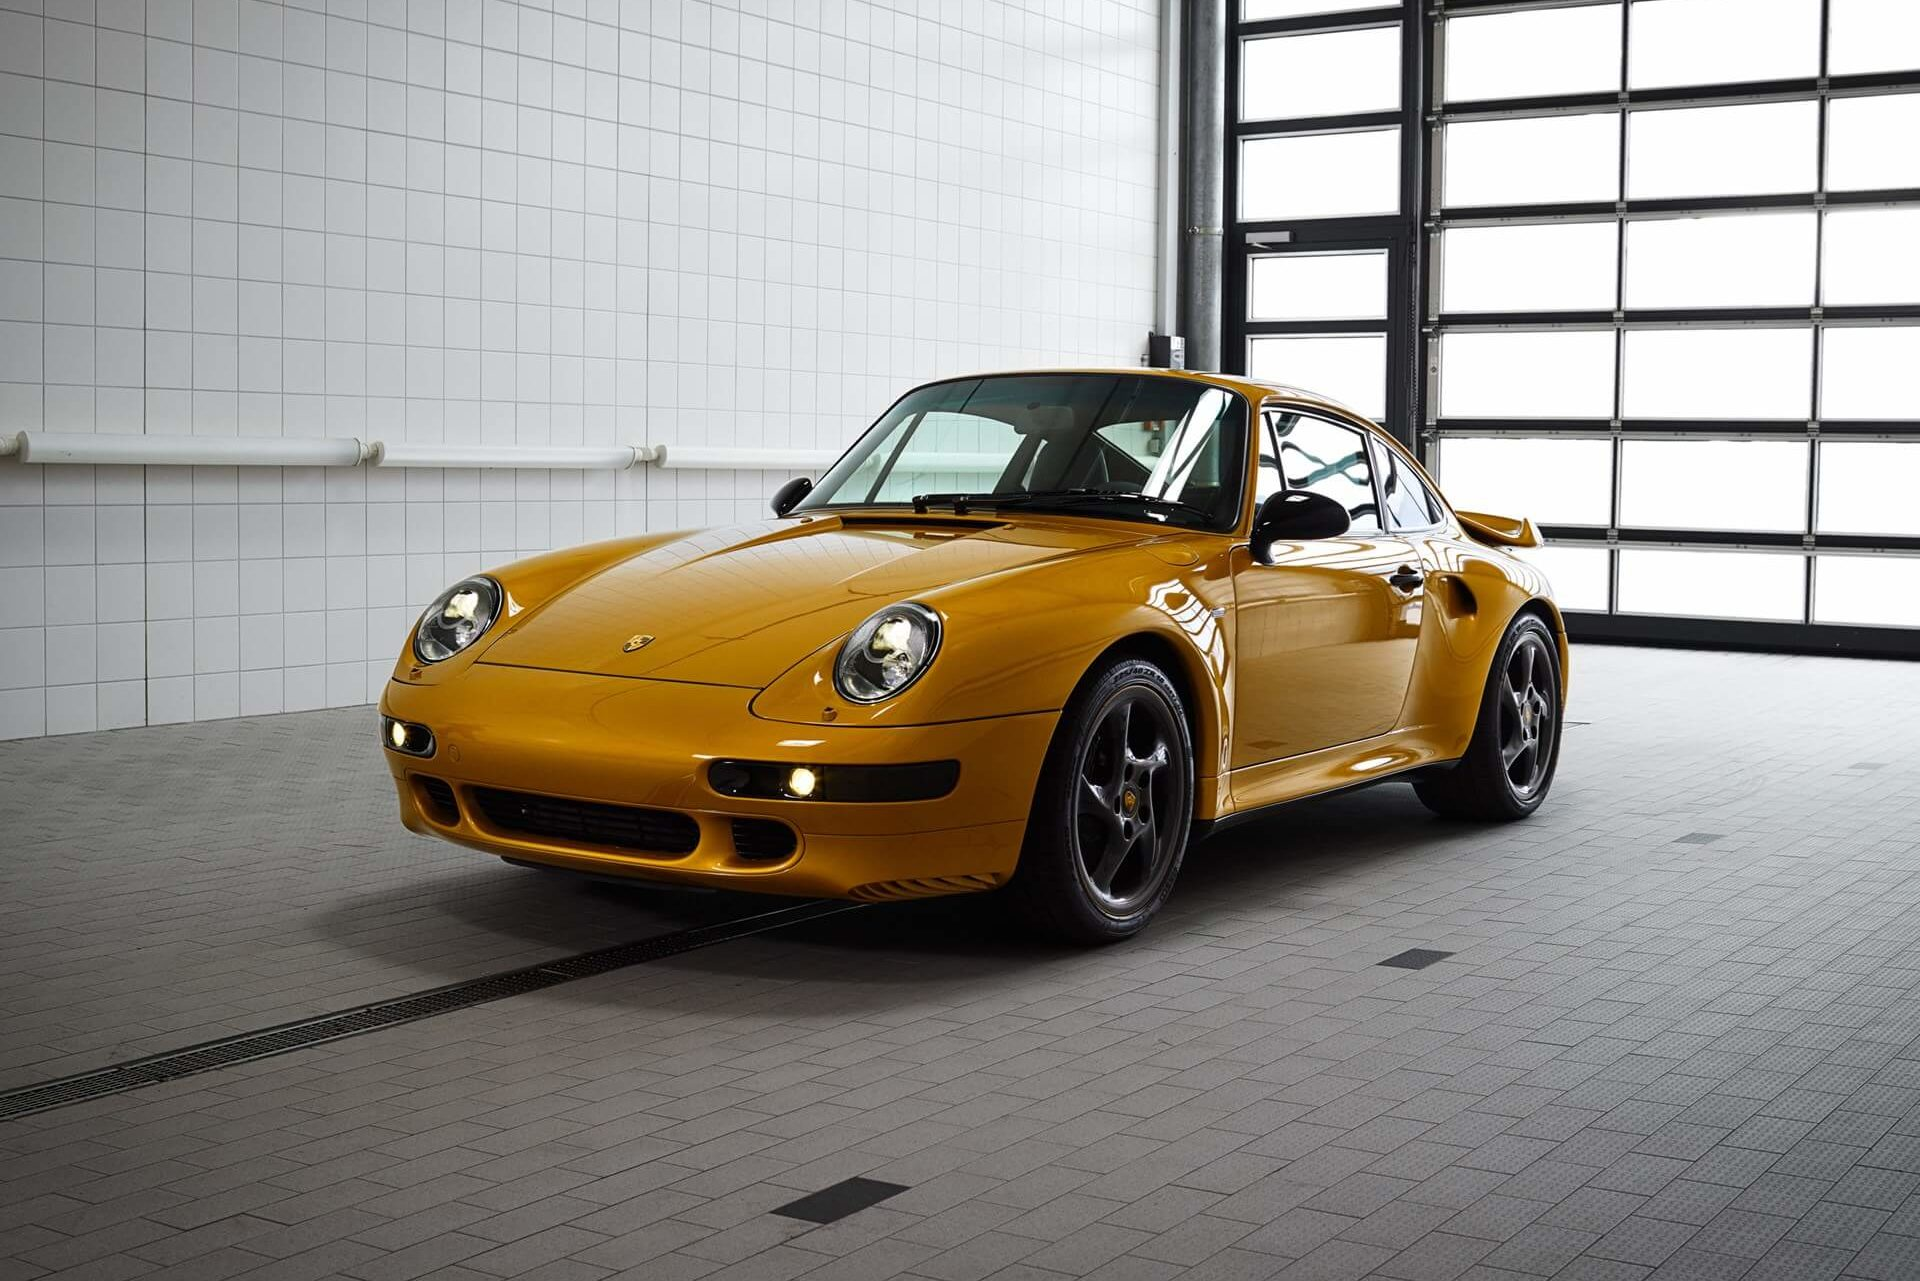 2018 Porsche 911 Turbo Project Gold